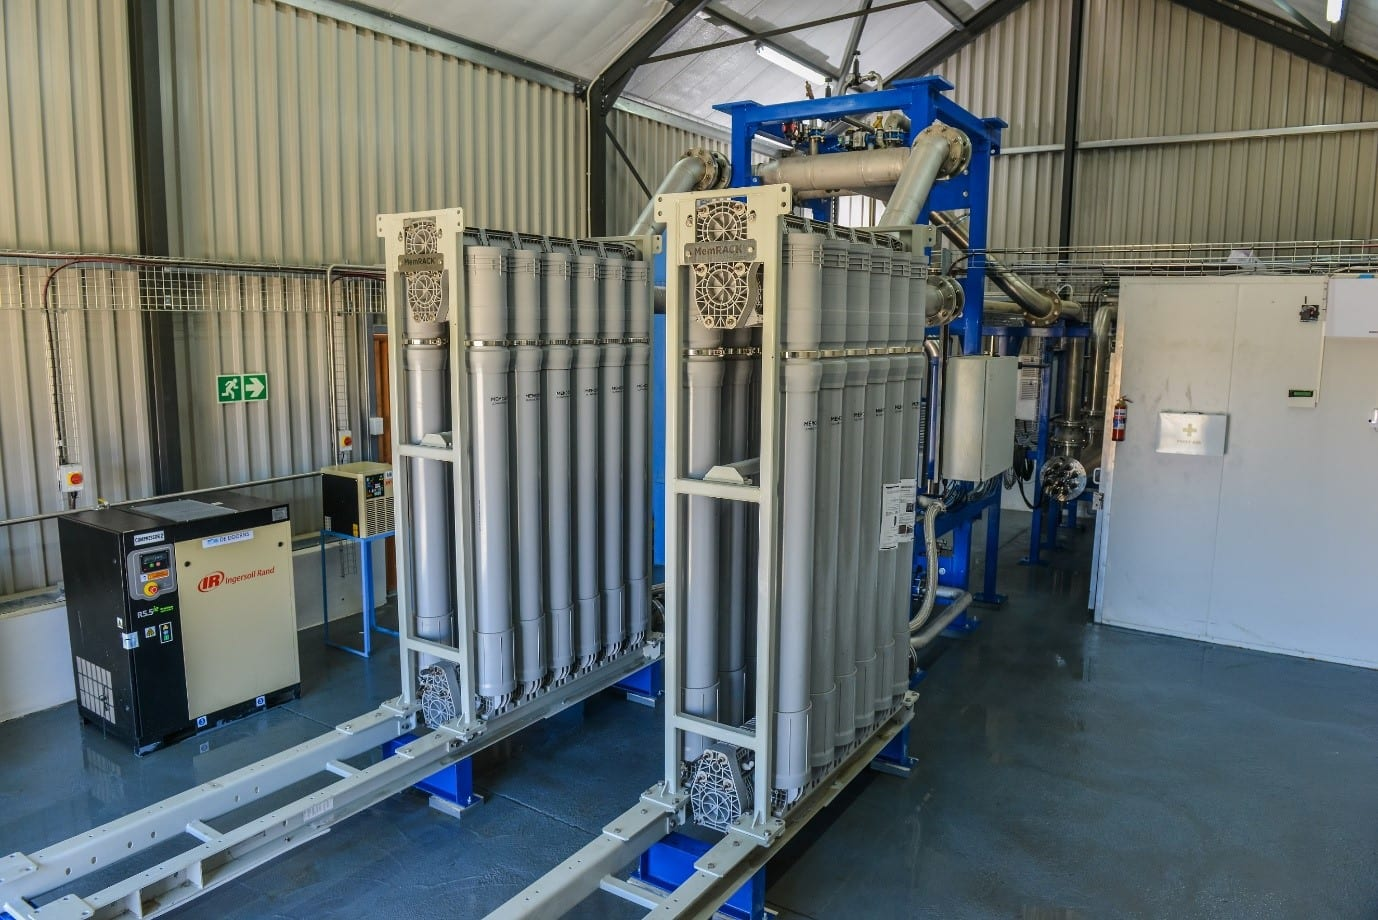 Ultraviolet treatment in wastewater plants